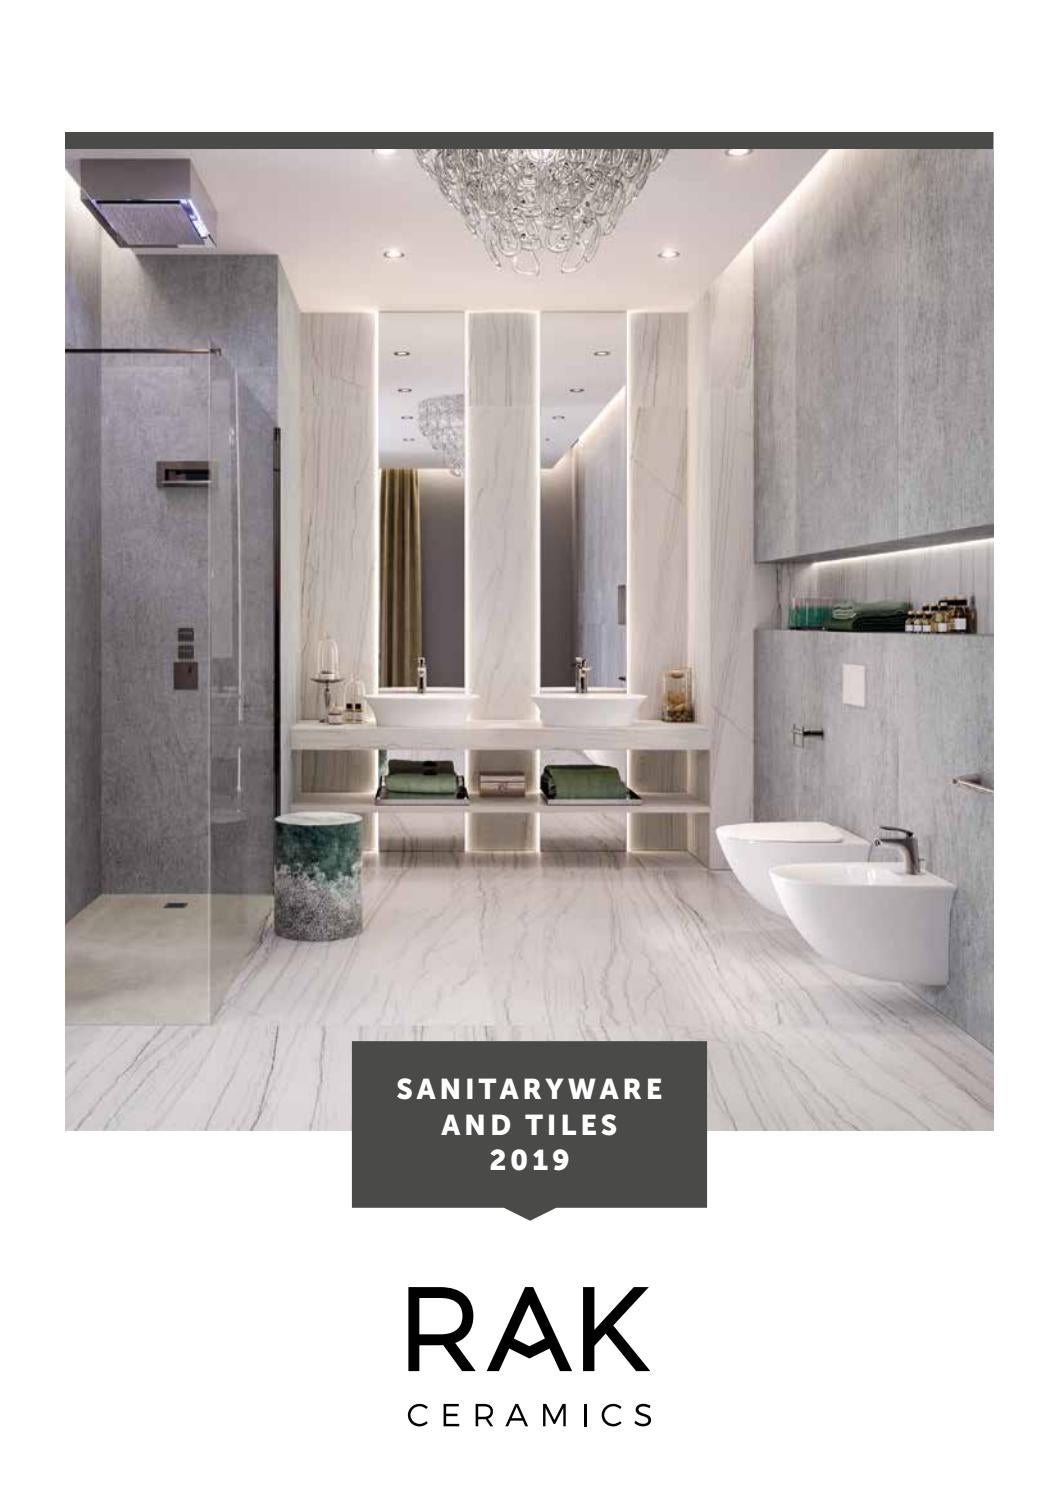 Rak Ceramics Sanitaryware And Tiles